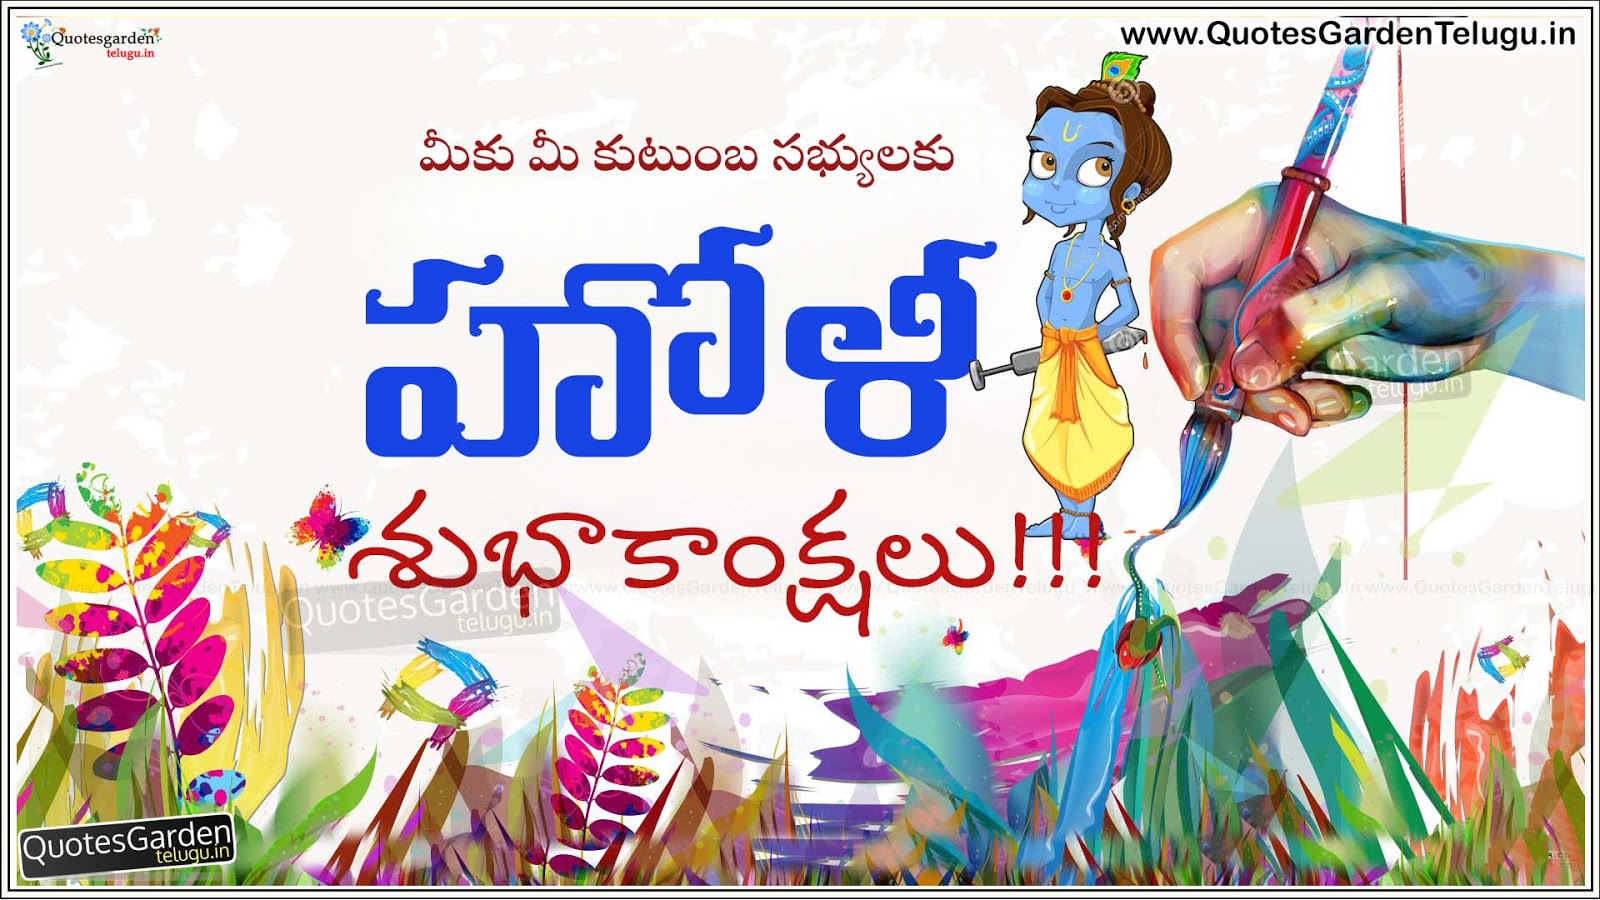 Telugu holi greetings quotations sms messages quotes garden telugu happy holi sms in telugu holi wishes sms in telugu holi sms 2013 in m4hsunfo